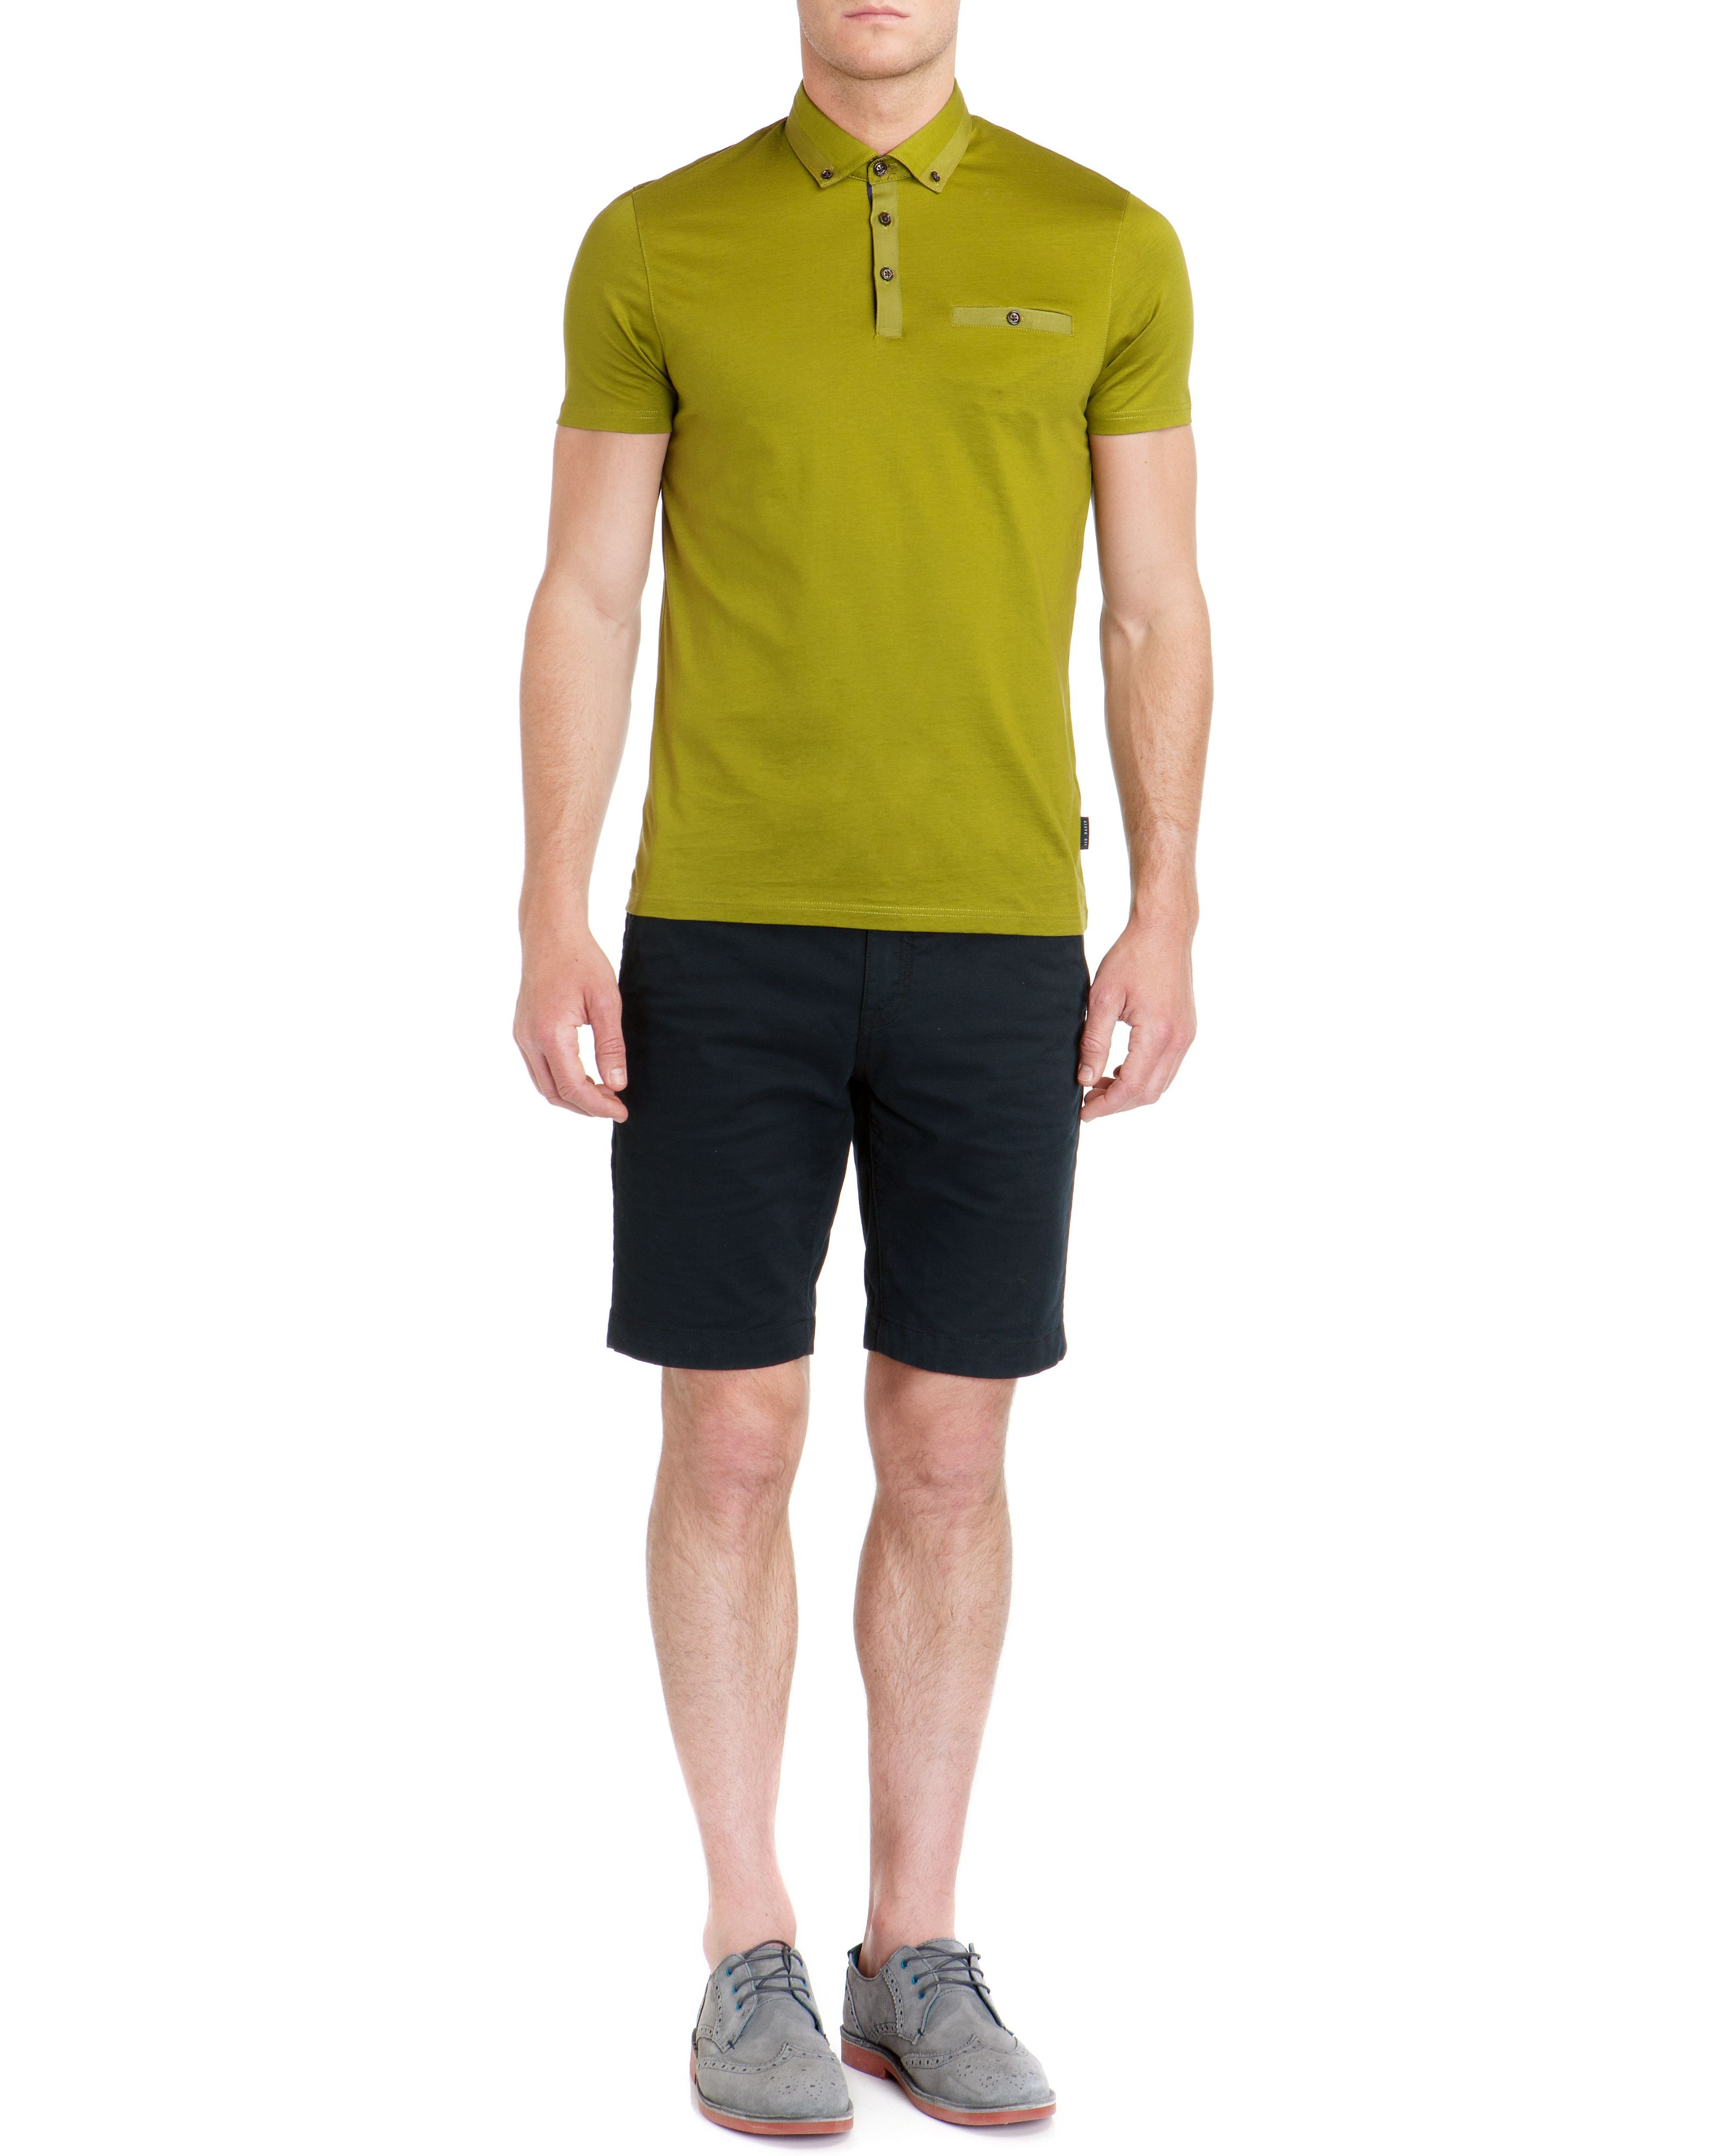 Grainyo grosgrain cotton polo shirt